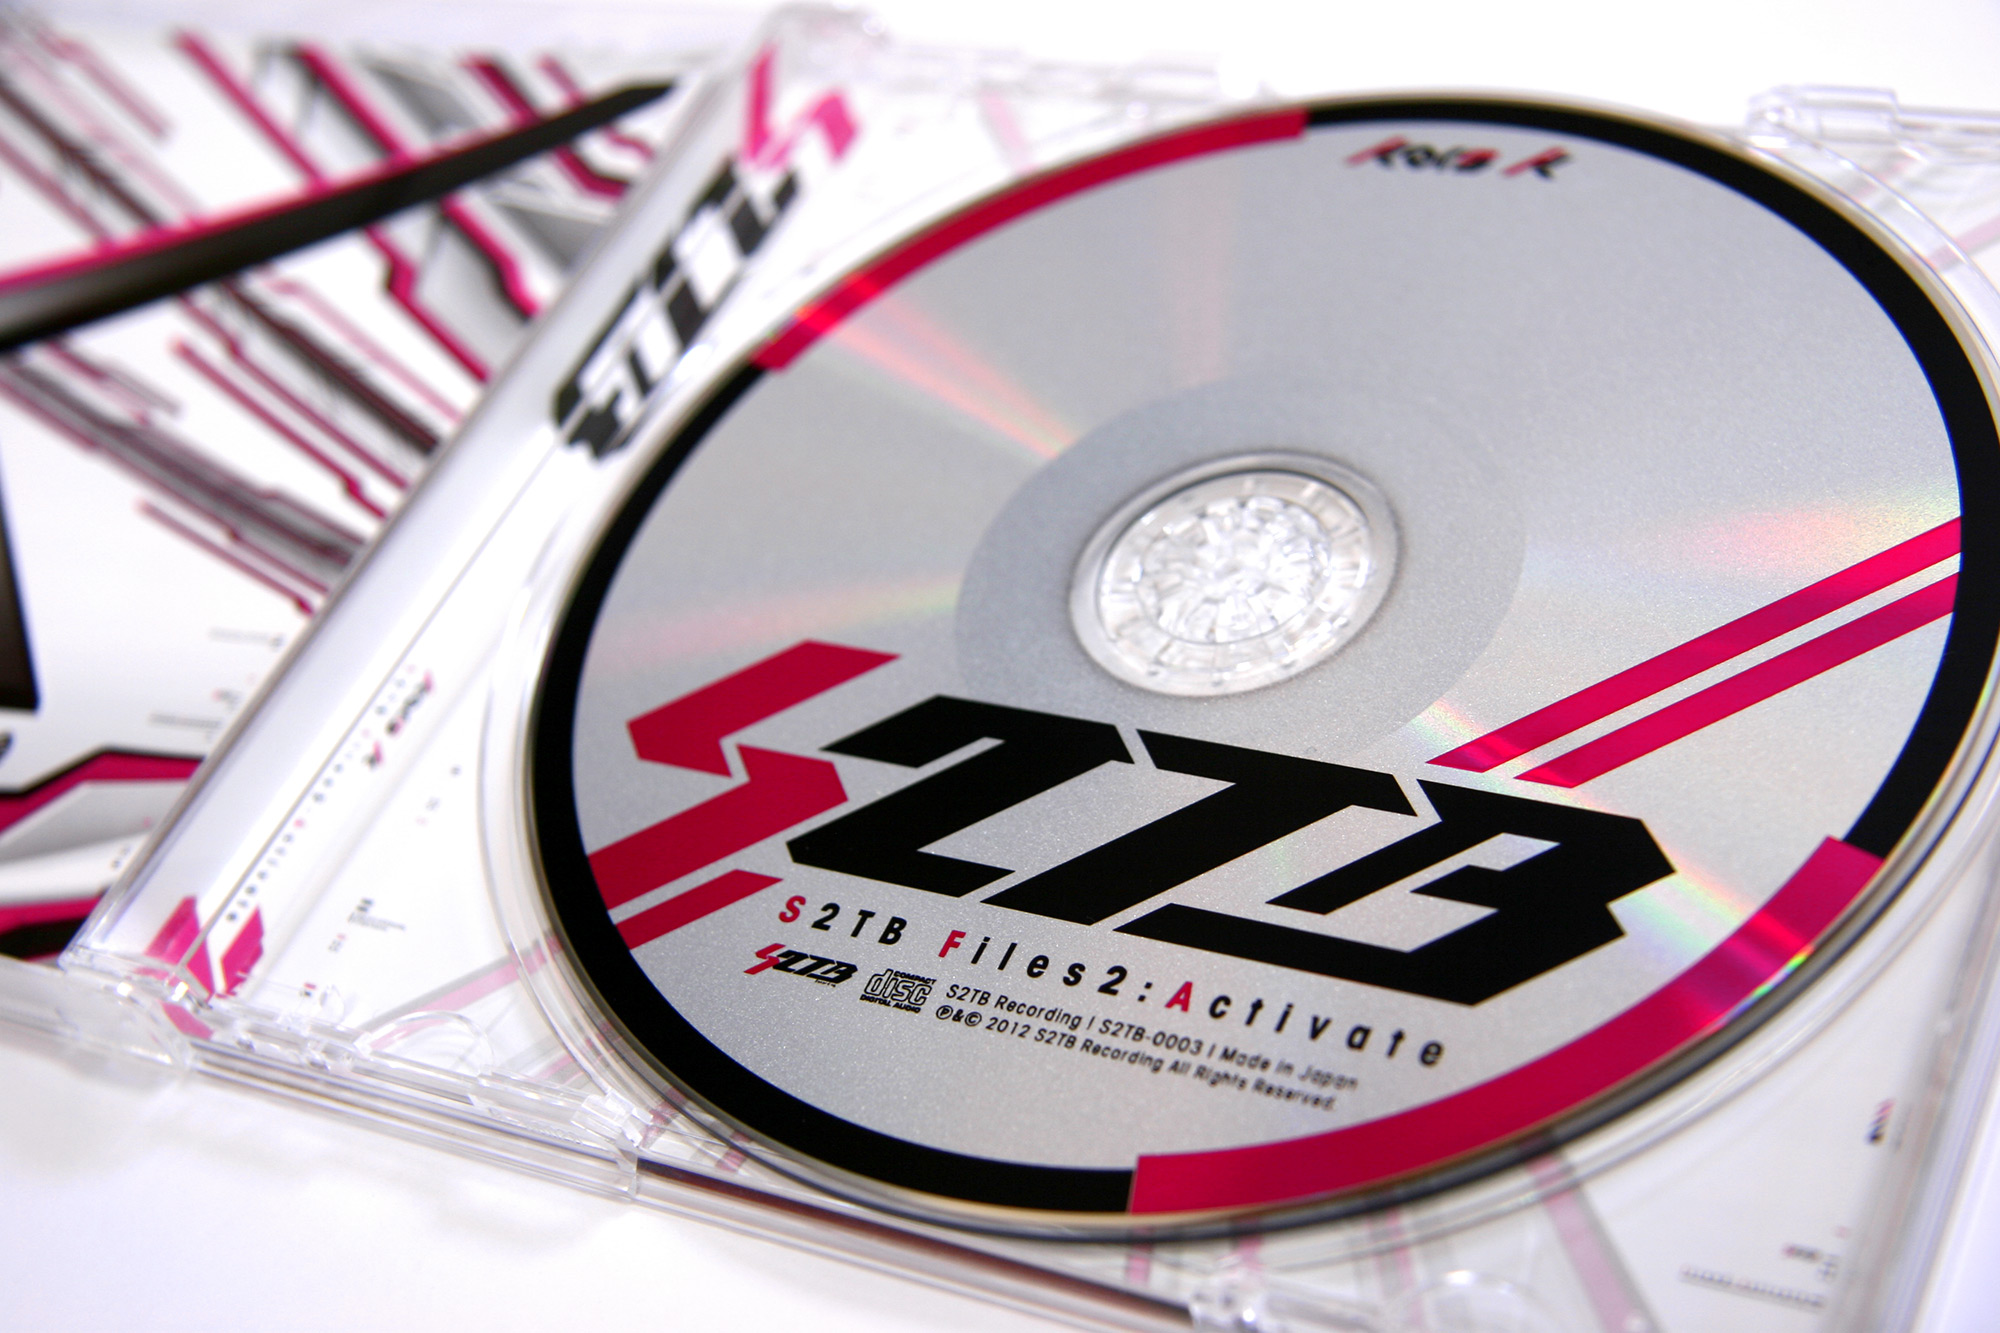 S2TB_Files2-Activate_CD02